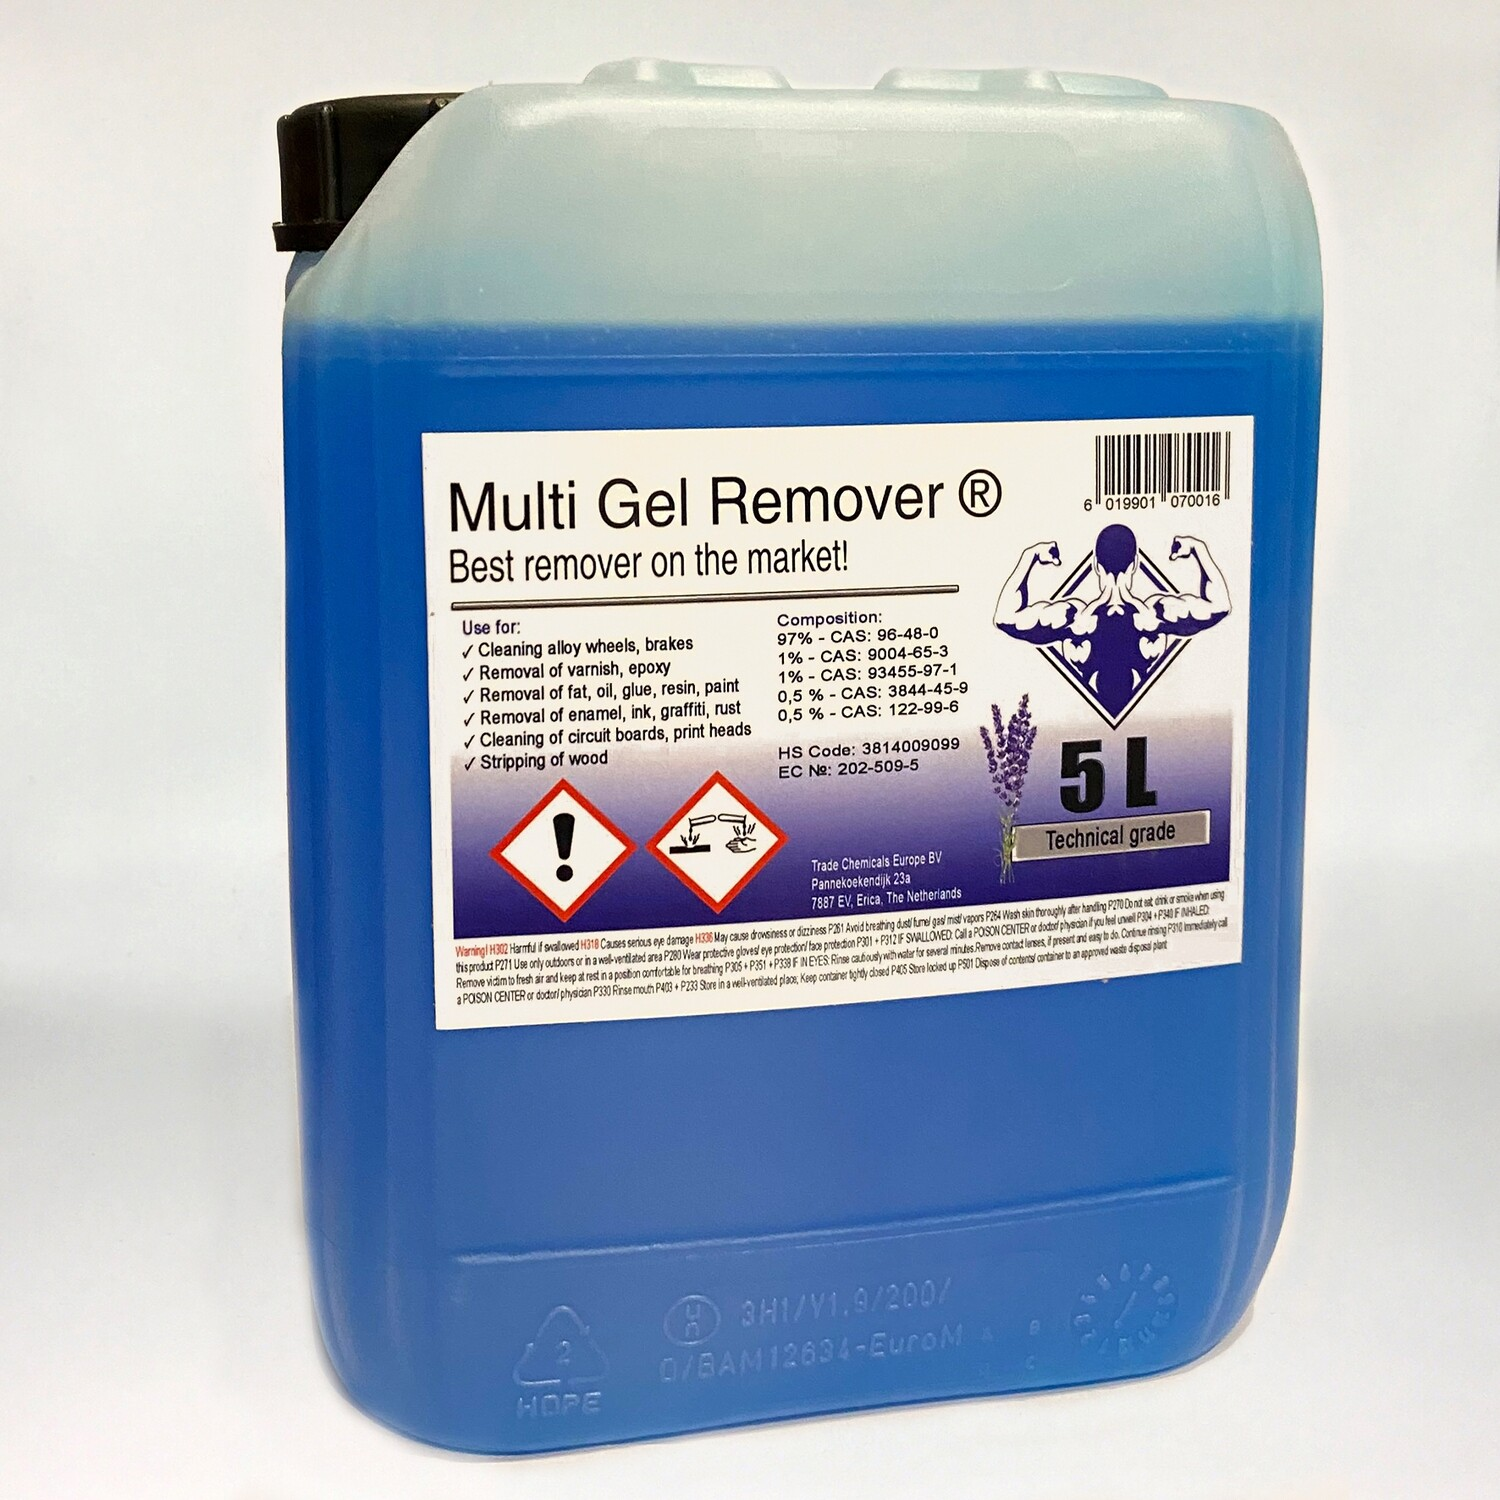 Multi Gel Remover® 5.000 ml Technical Blue Canister